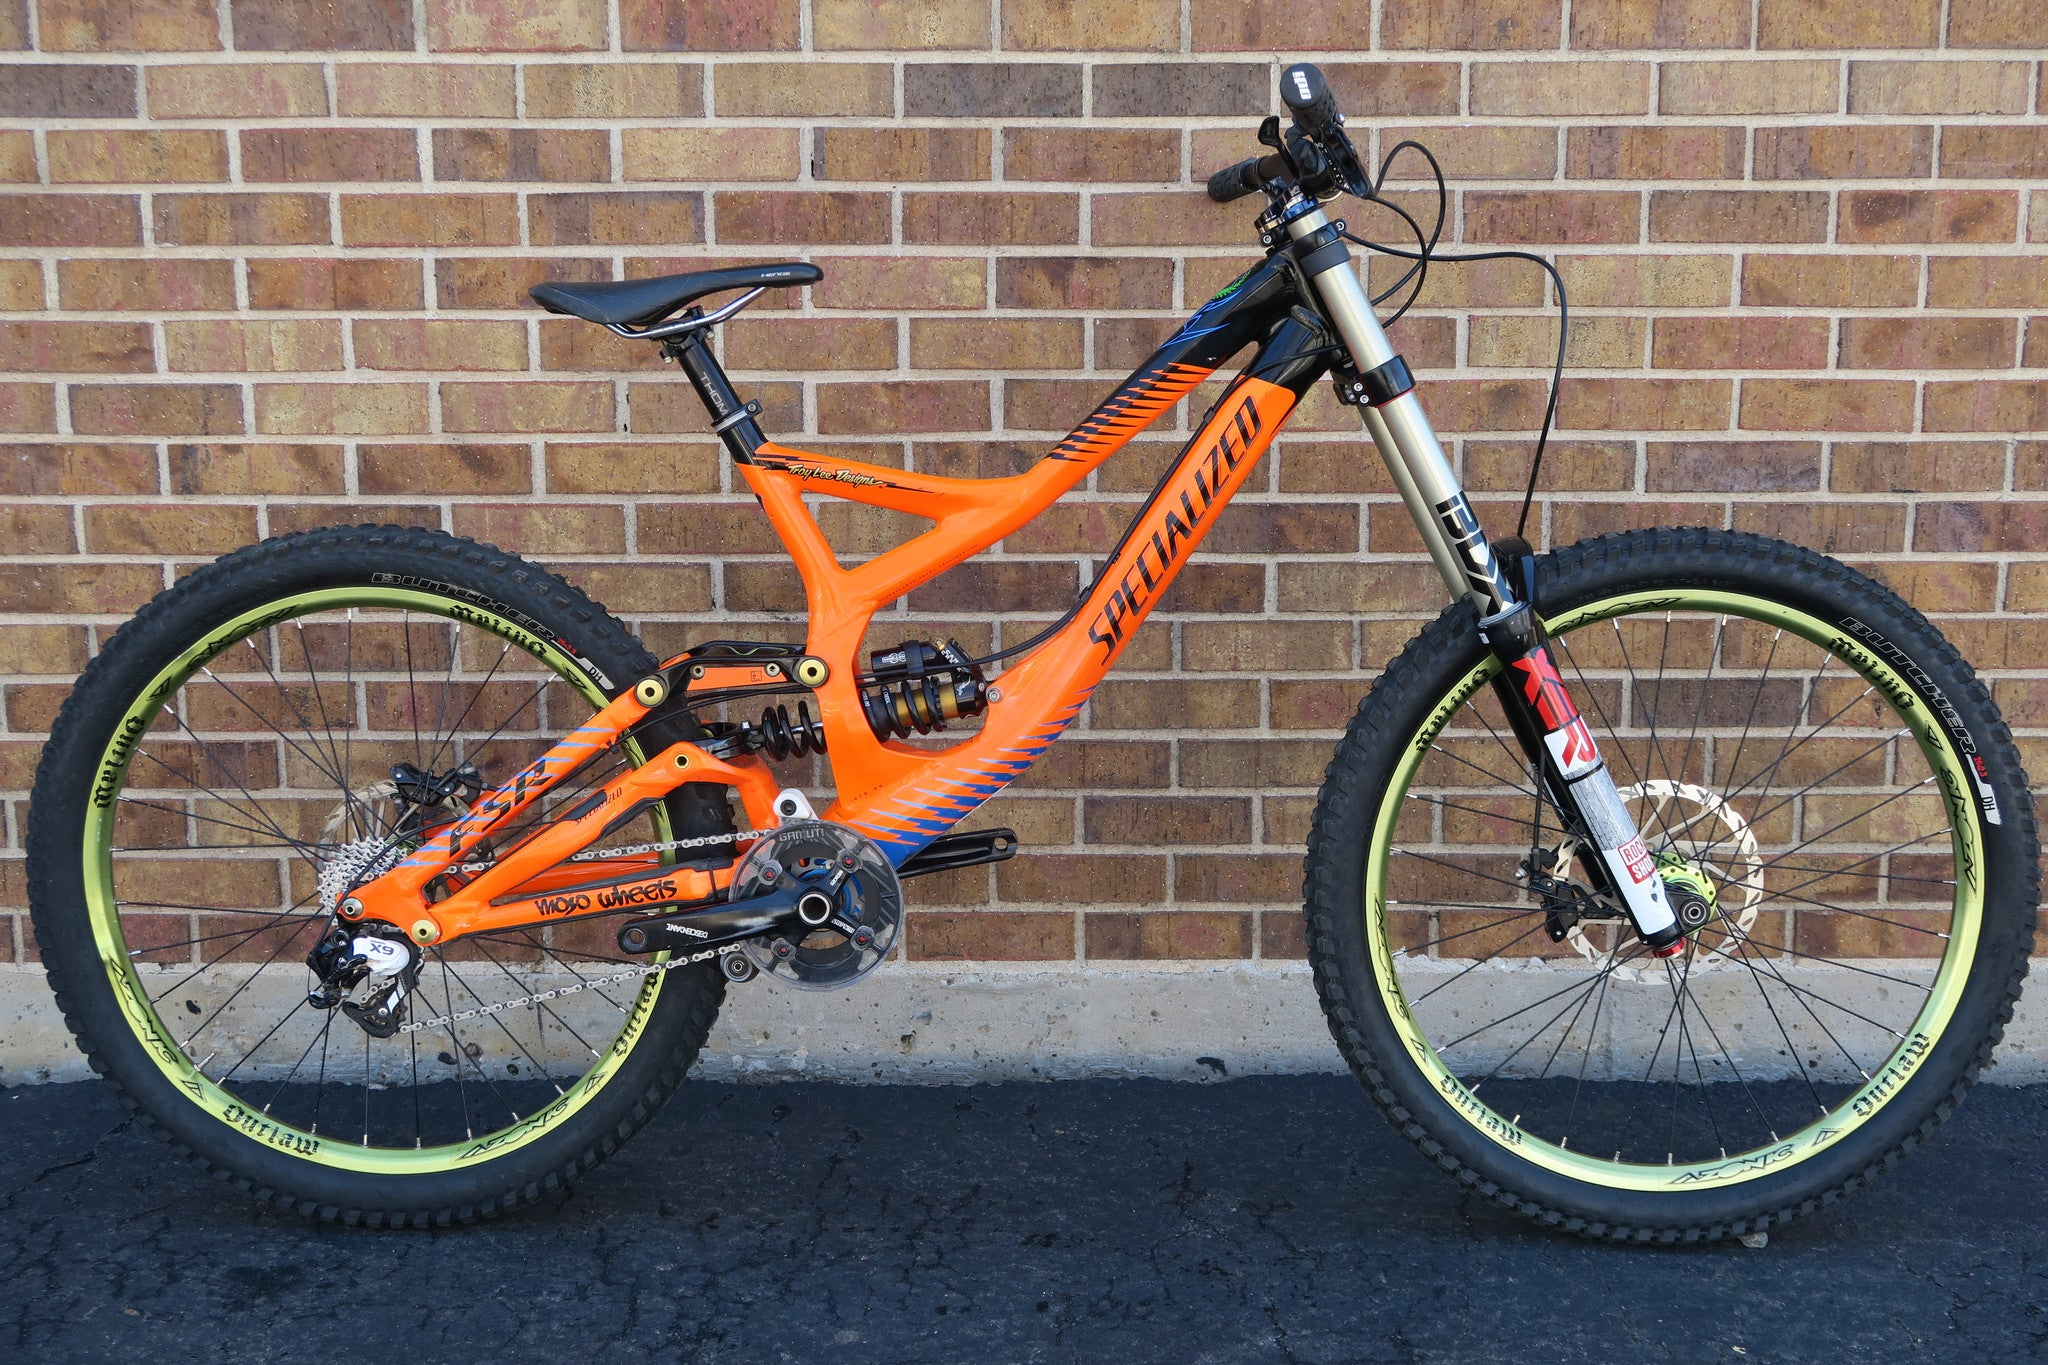 2012 SPECIALIZED DEMO 8 TLD EDITION